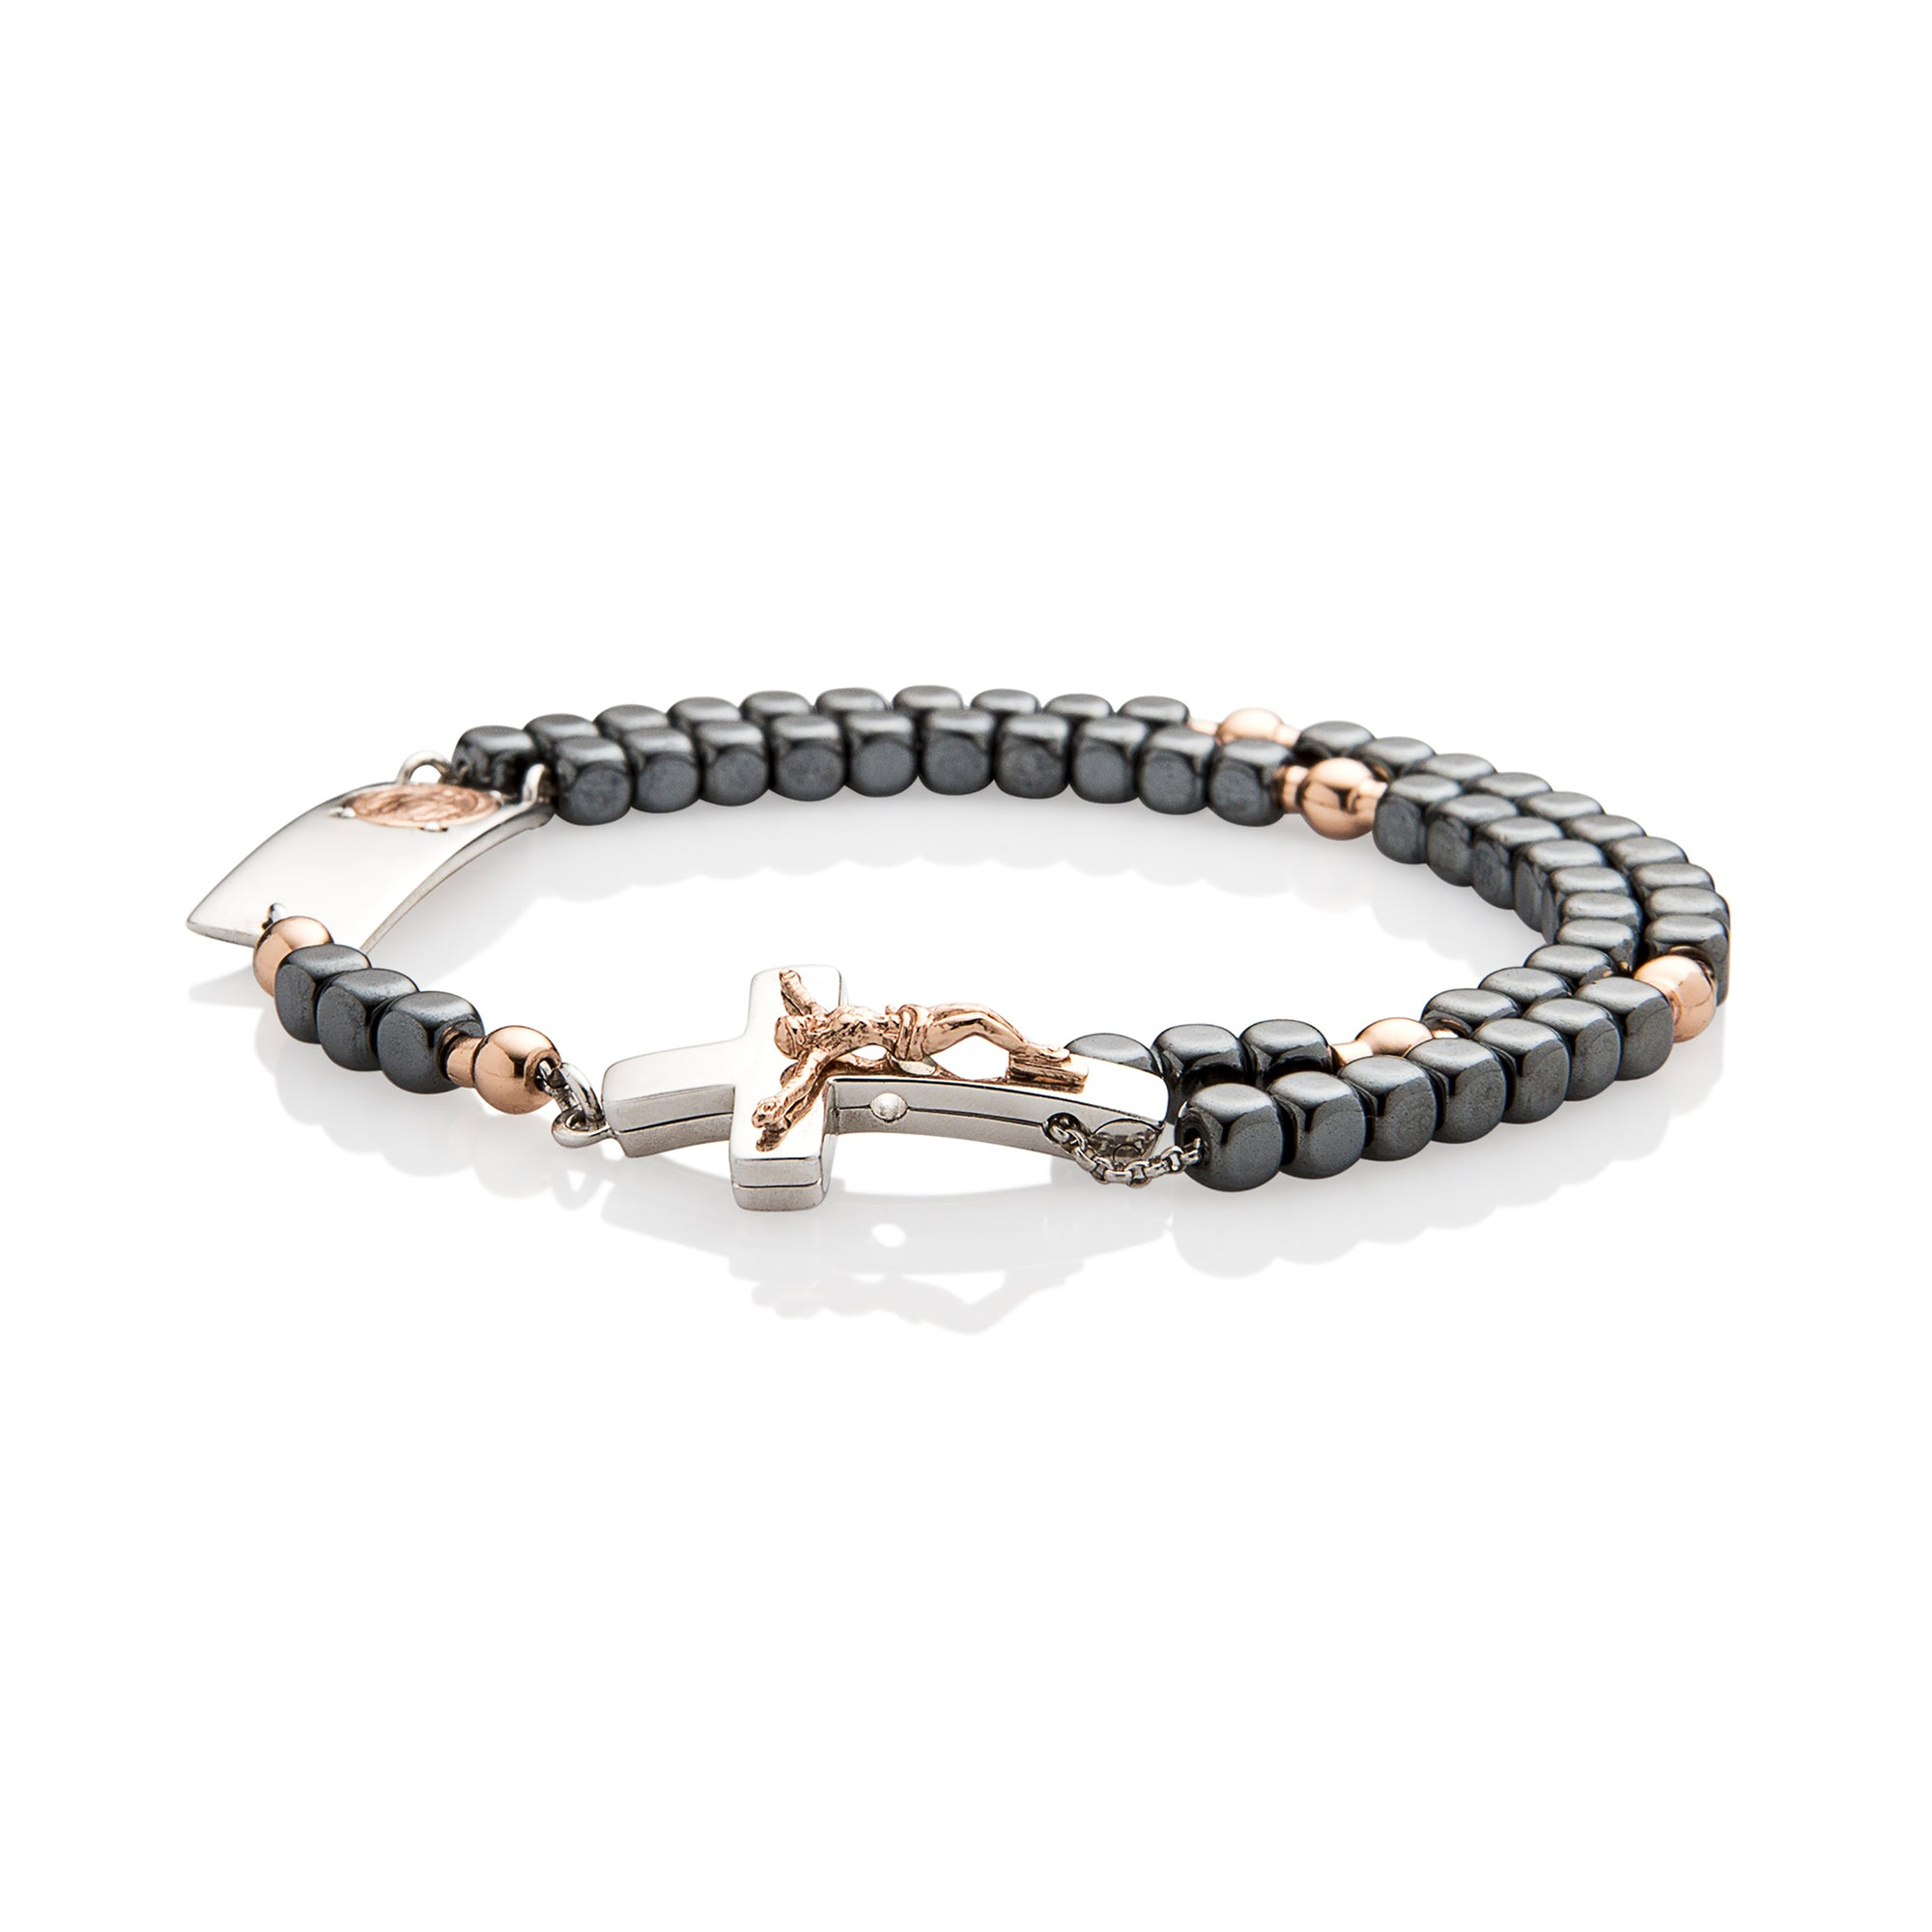 Magnificat Rosalet® - Square Shiny Hematite Beads, Rose Gold Pater Beads, Traditional